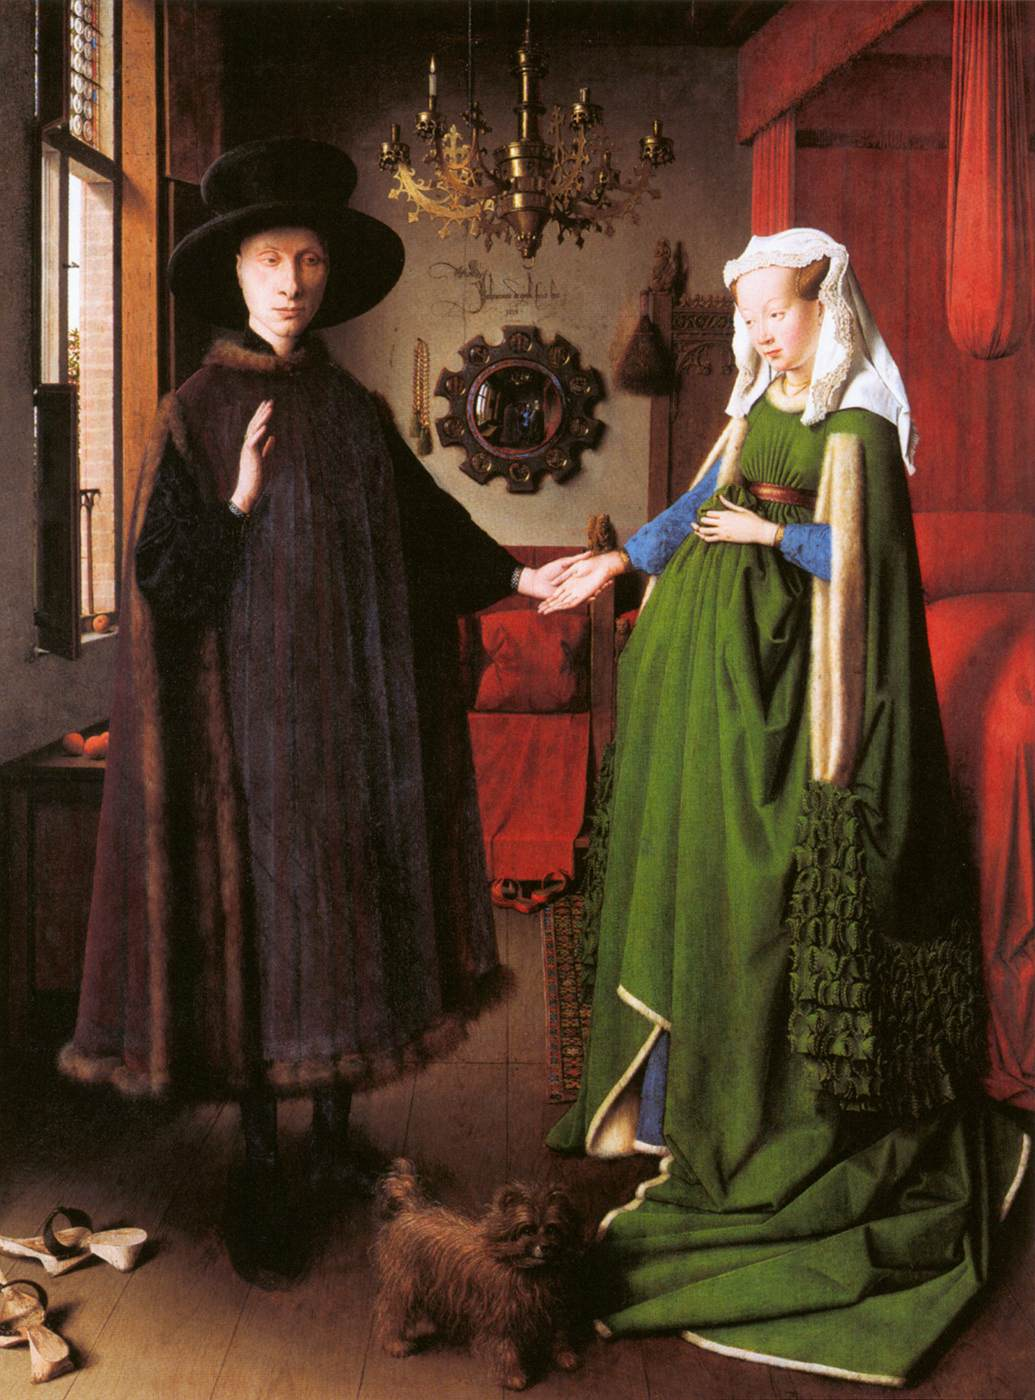 Eyck, van Jan (1390-1441) Pittore Fiammingo